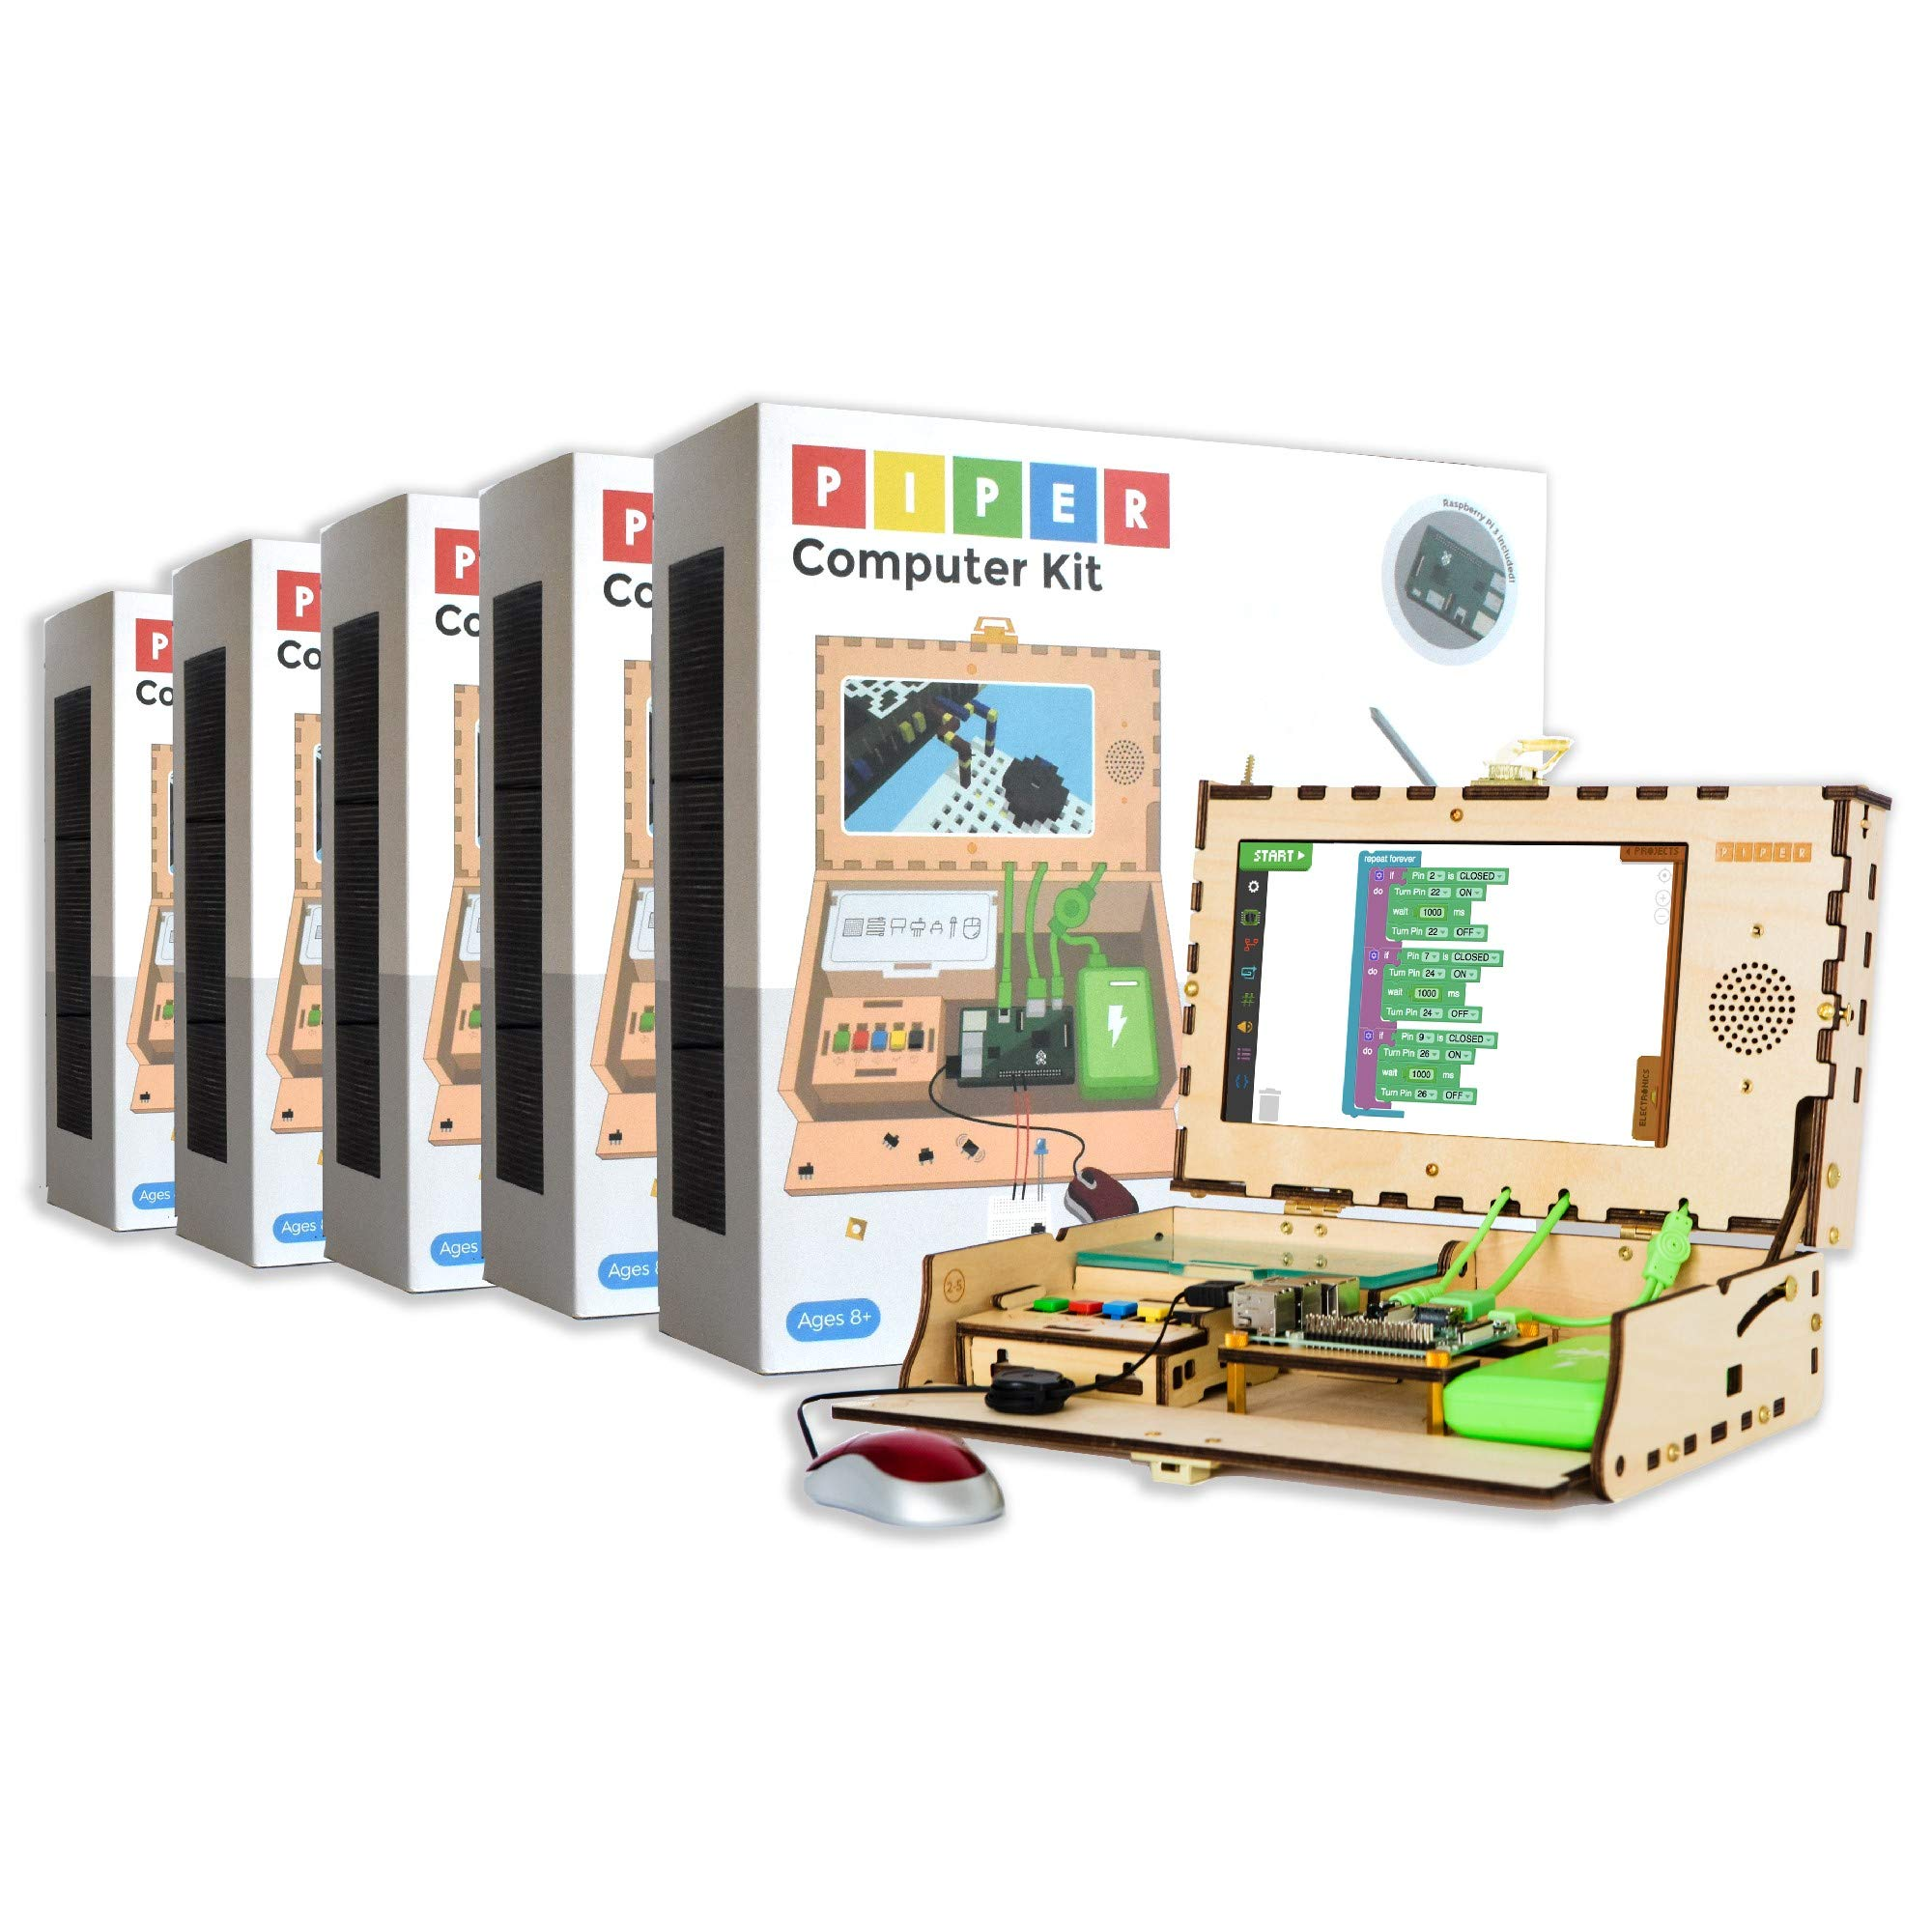 Piper Computer Kit - Education 5-Pack: Teach Kids to Code - Hands On STEAM Learning Toy with Minecraft: Raspberry Pi (New)